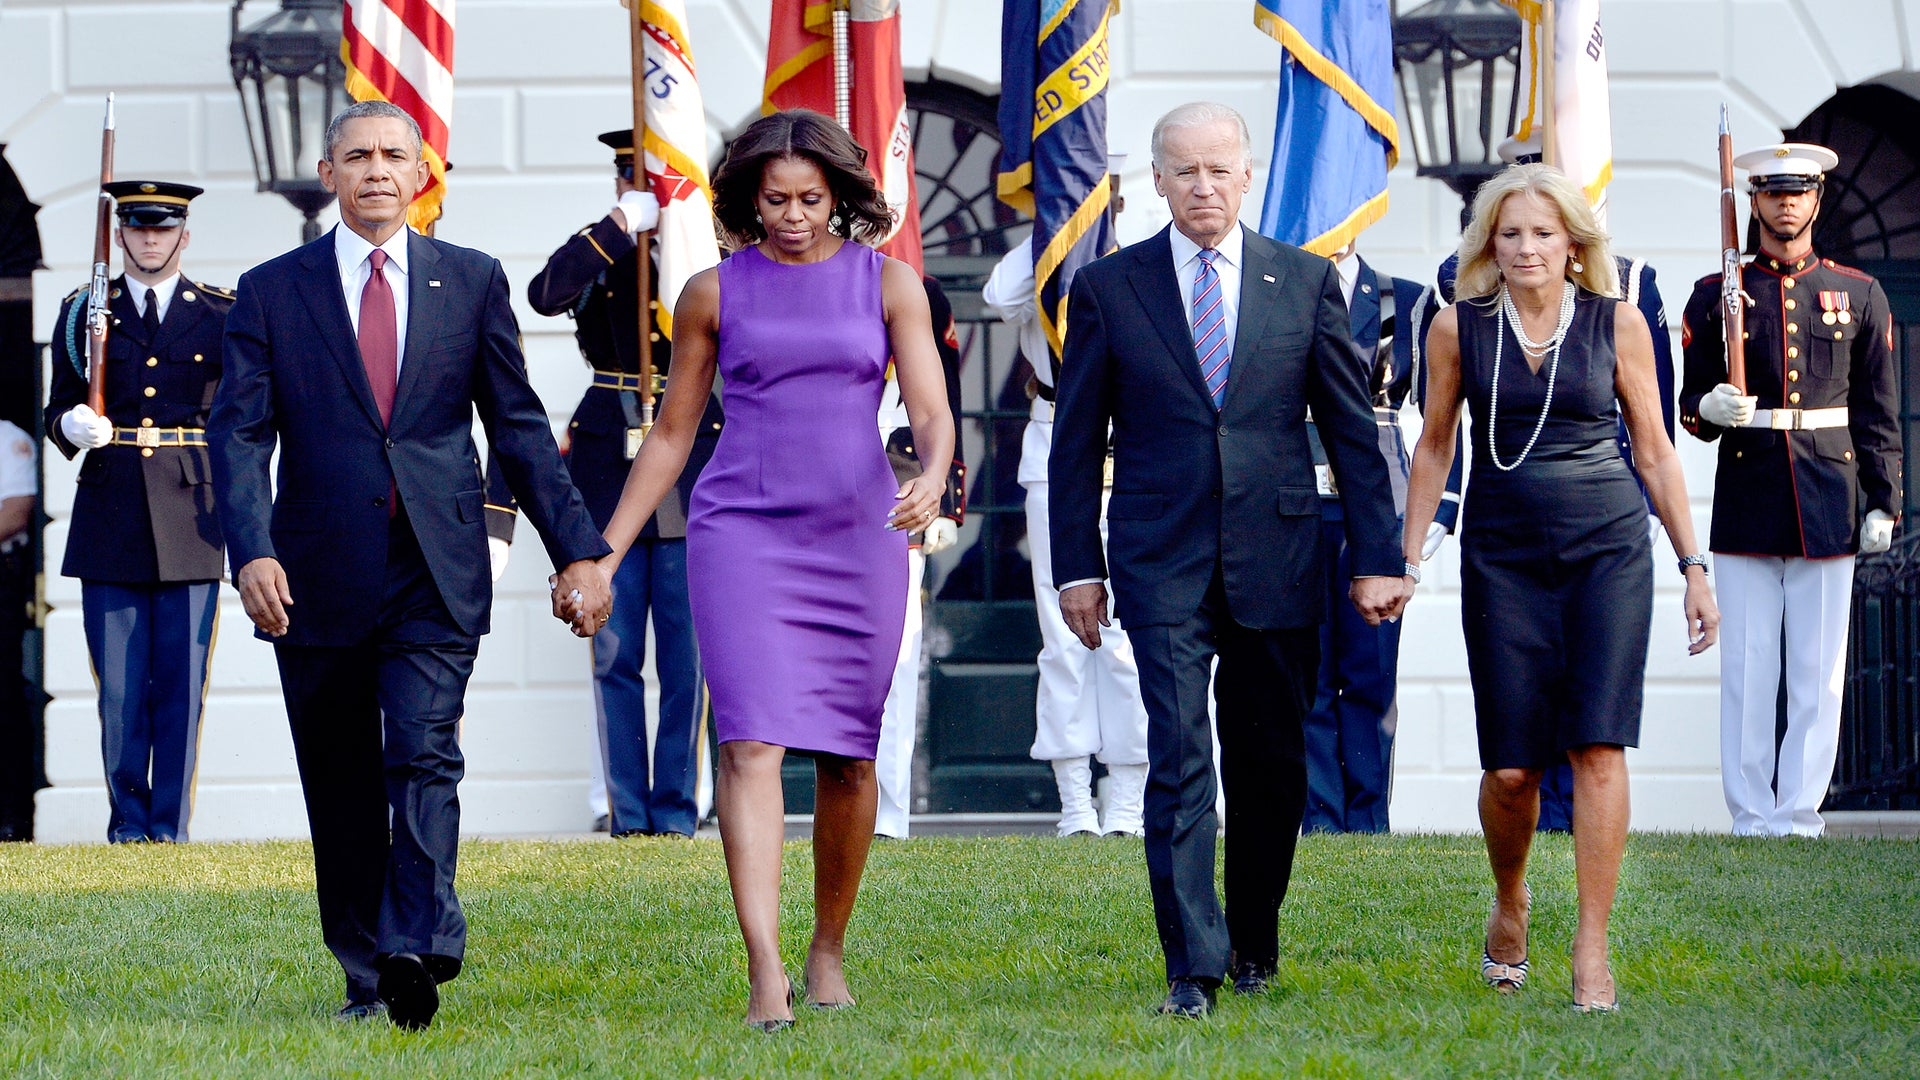 President and First Lady Obama to Attend Navy Yard Memorial